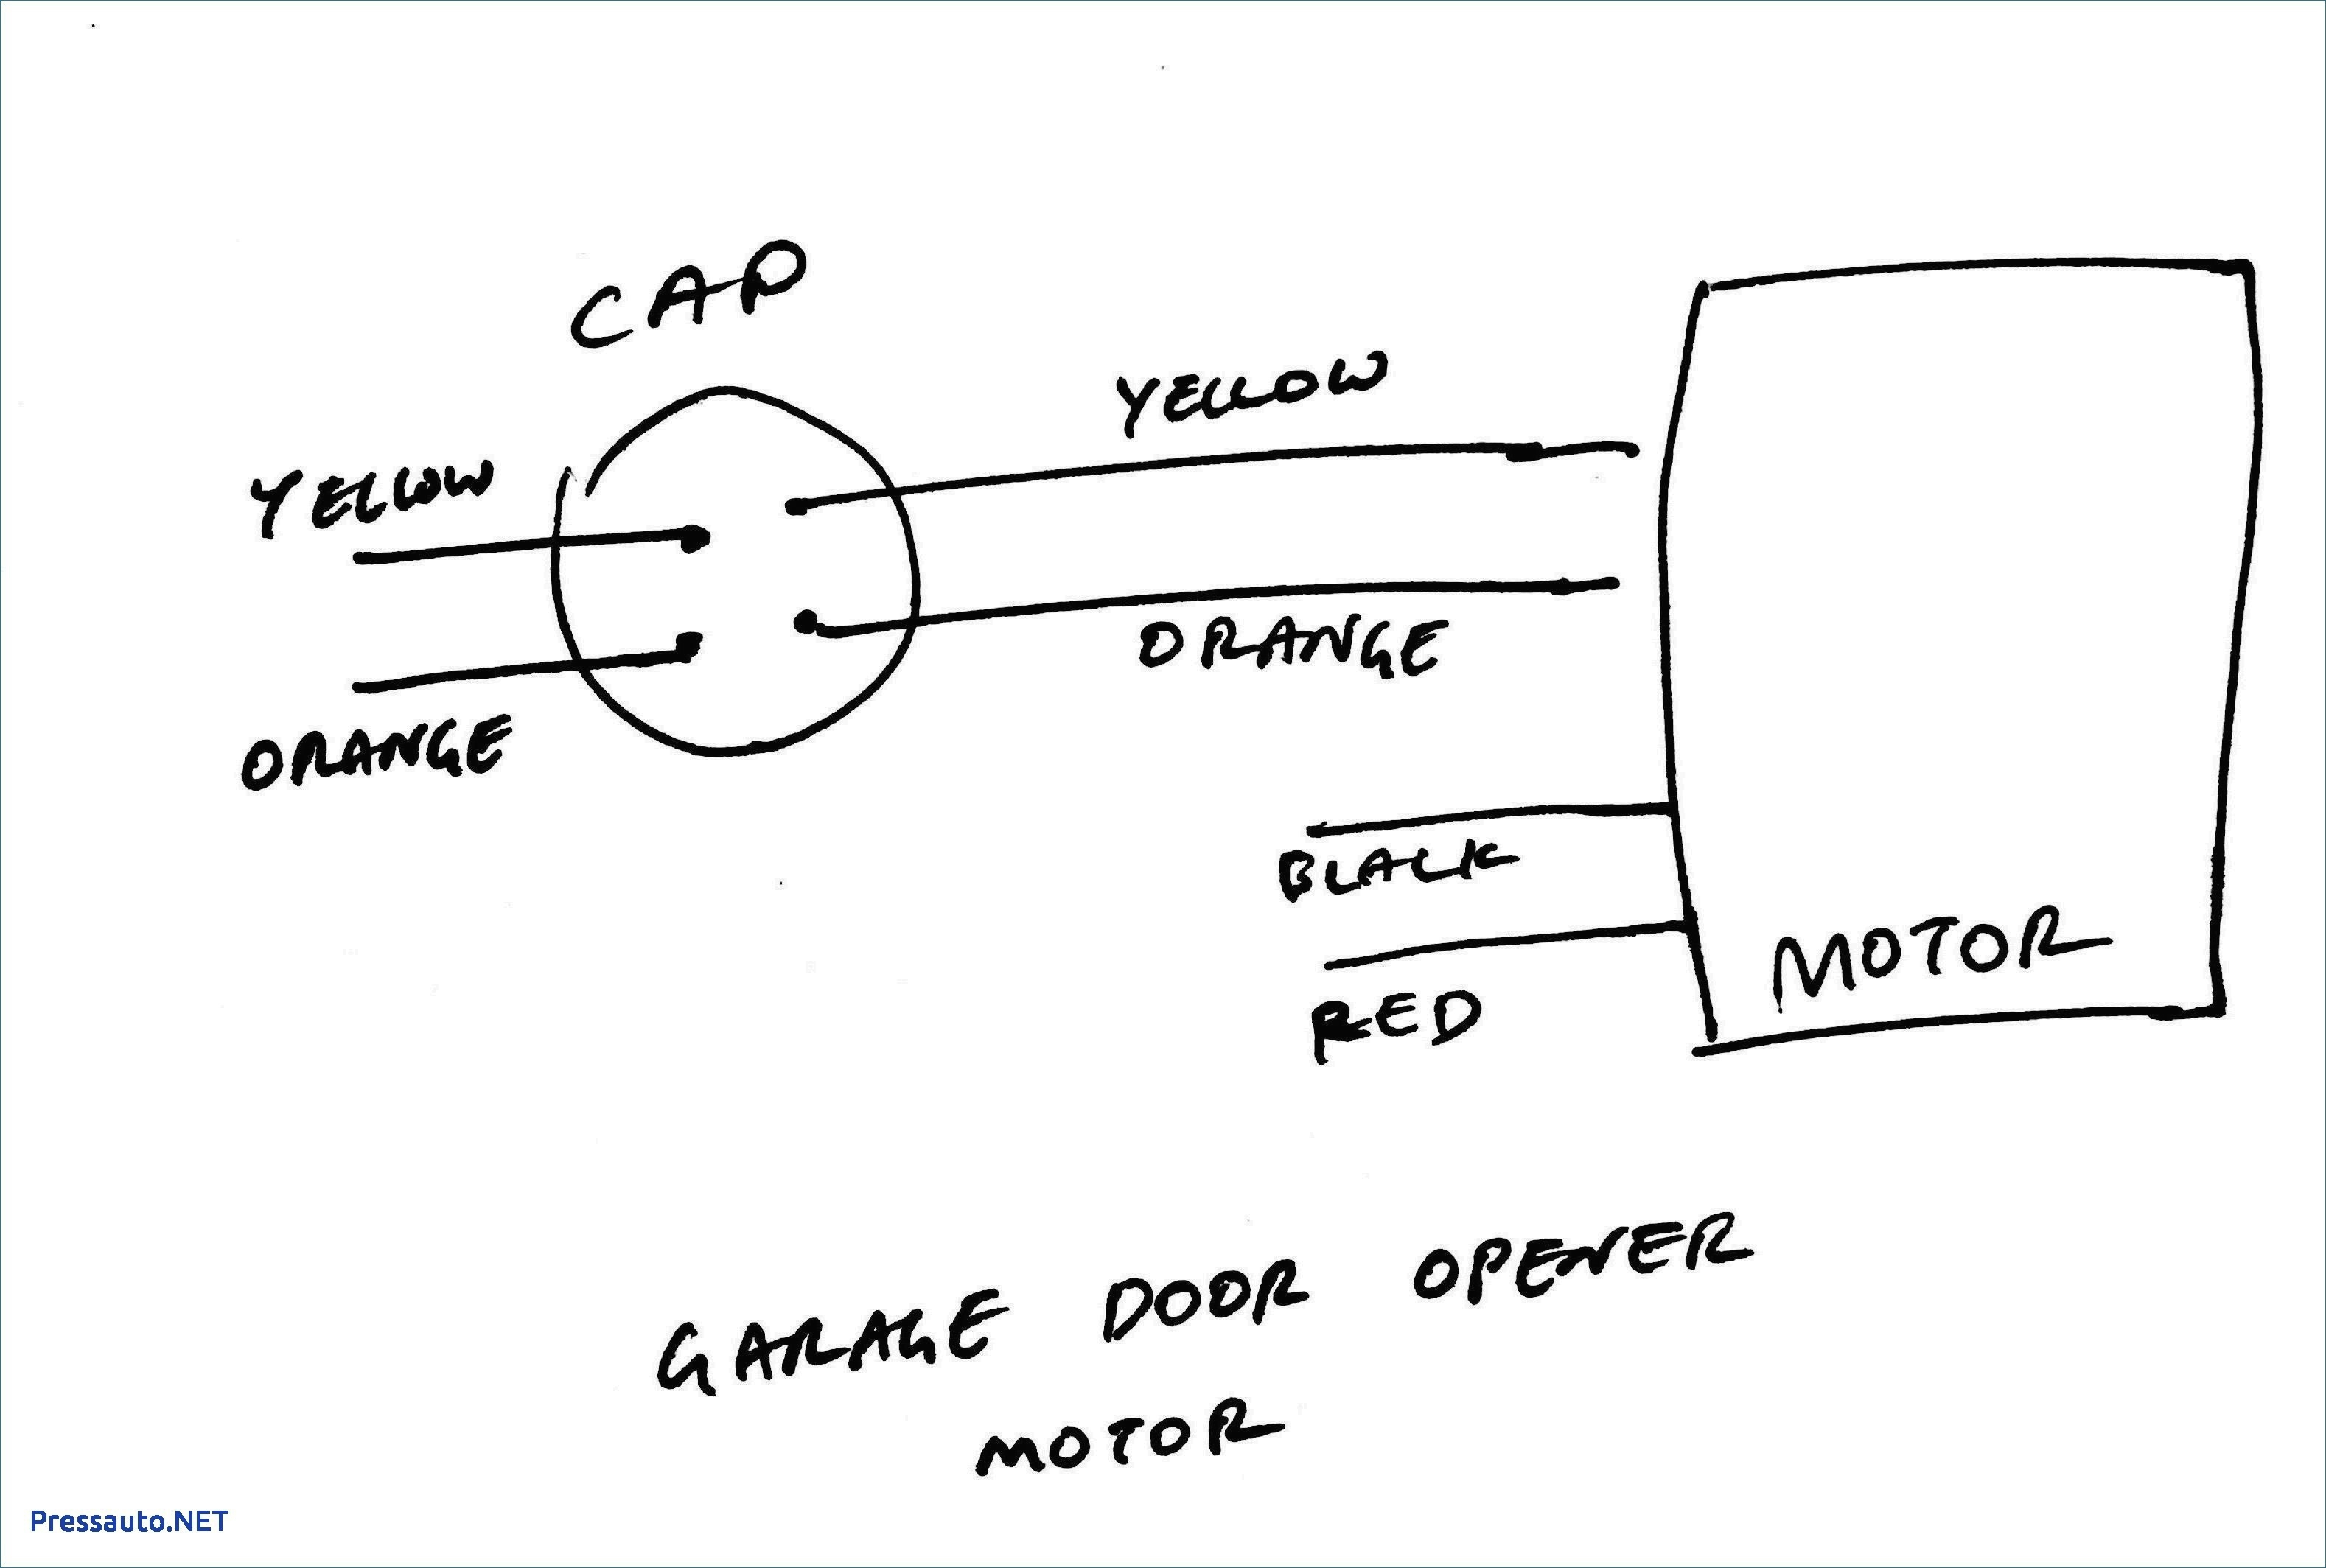 6 Wire Dc Motor Diagram - Wiring Diagrams Hidden Dc Motor Wiring Schematic on